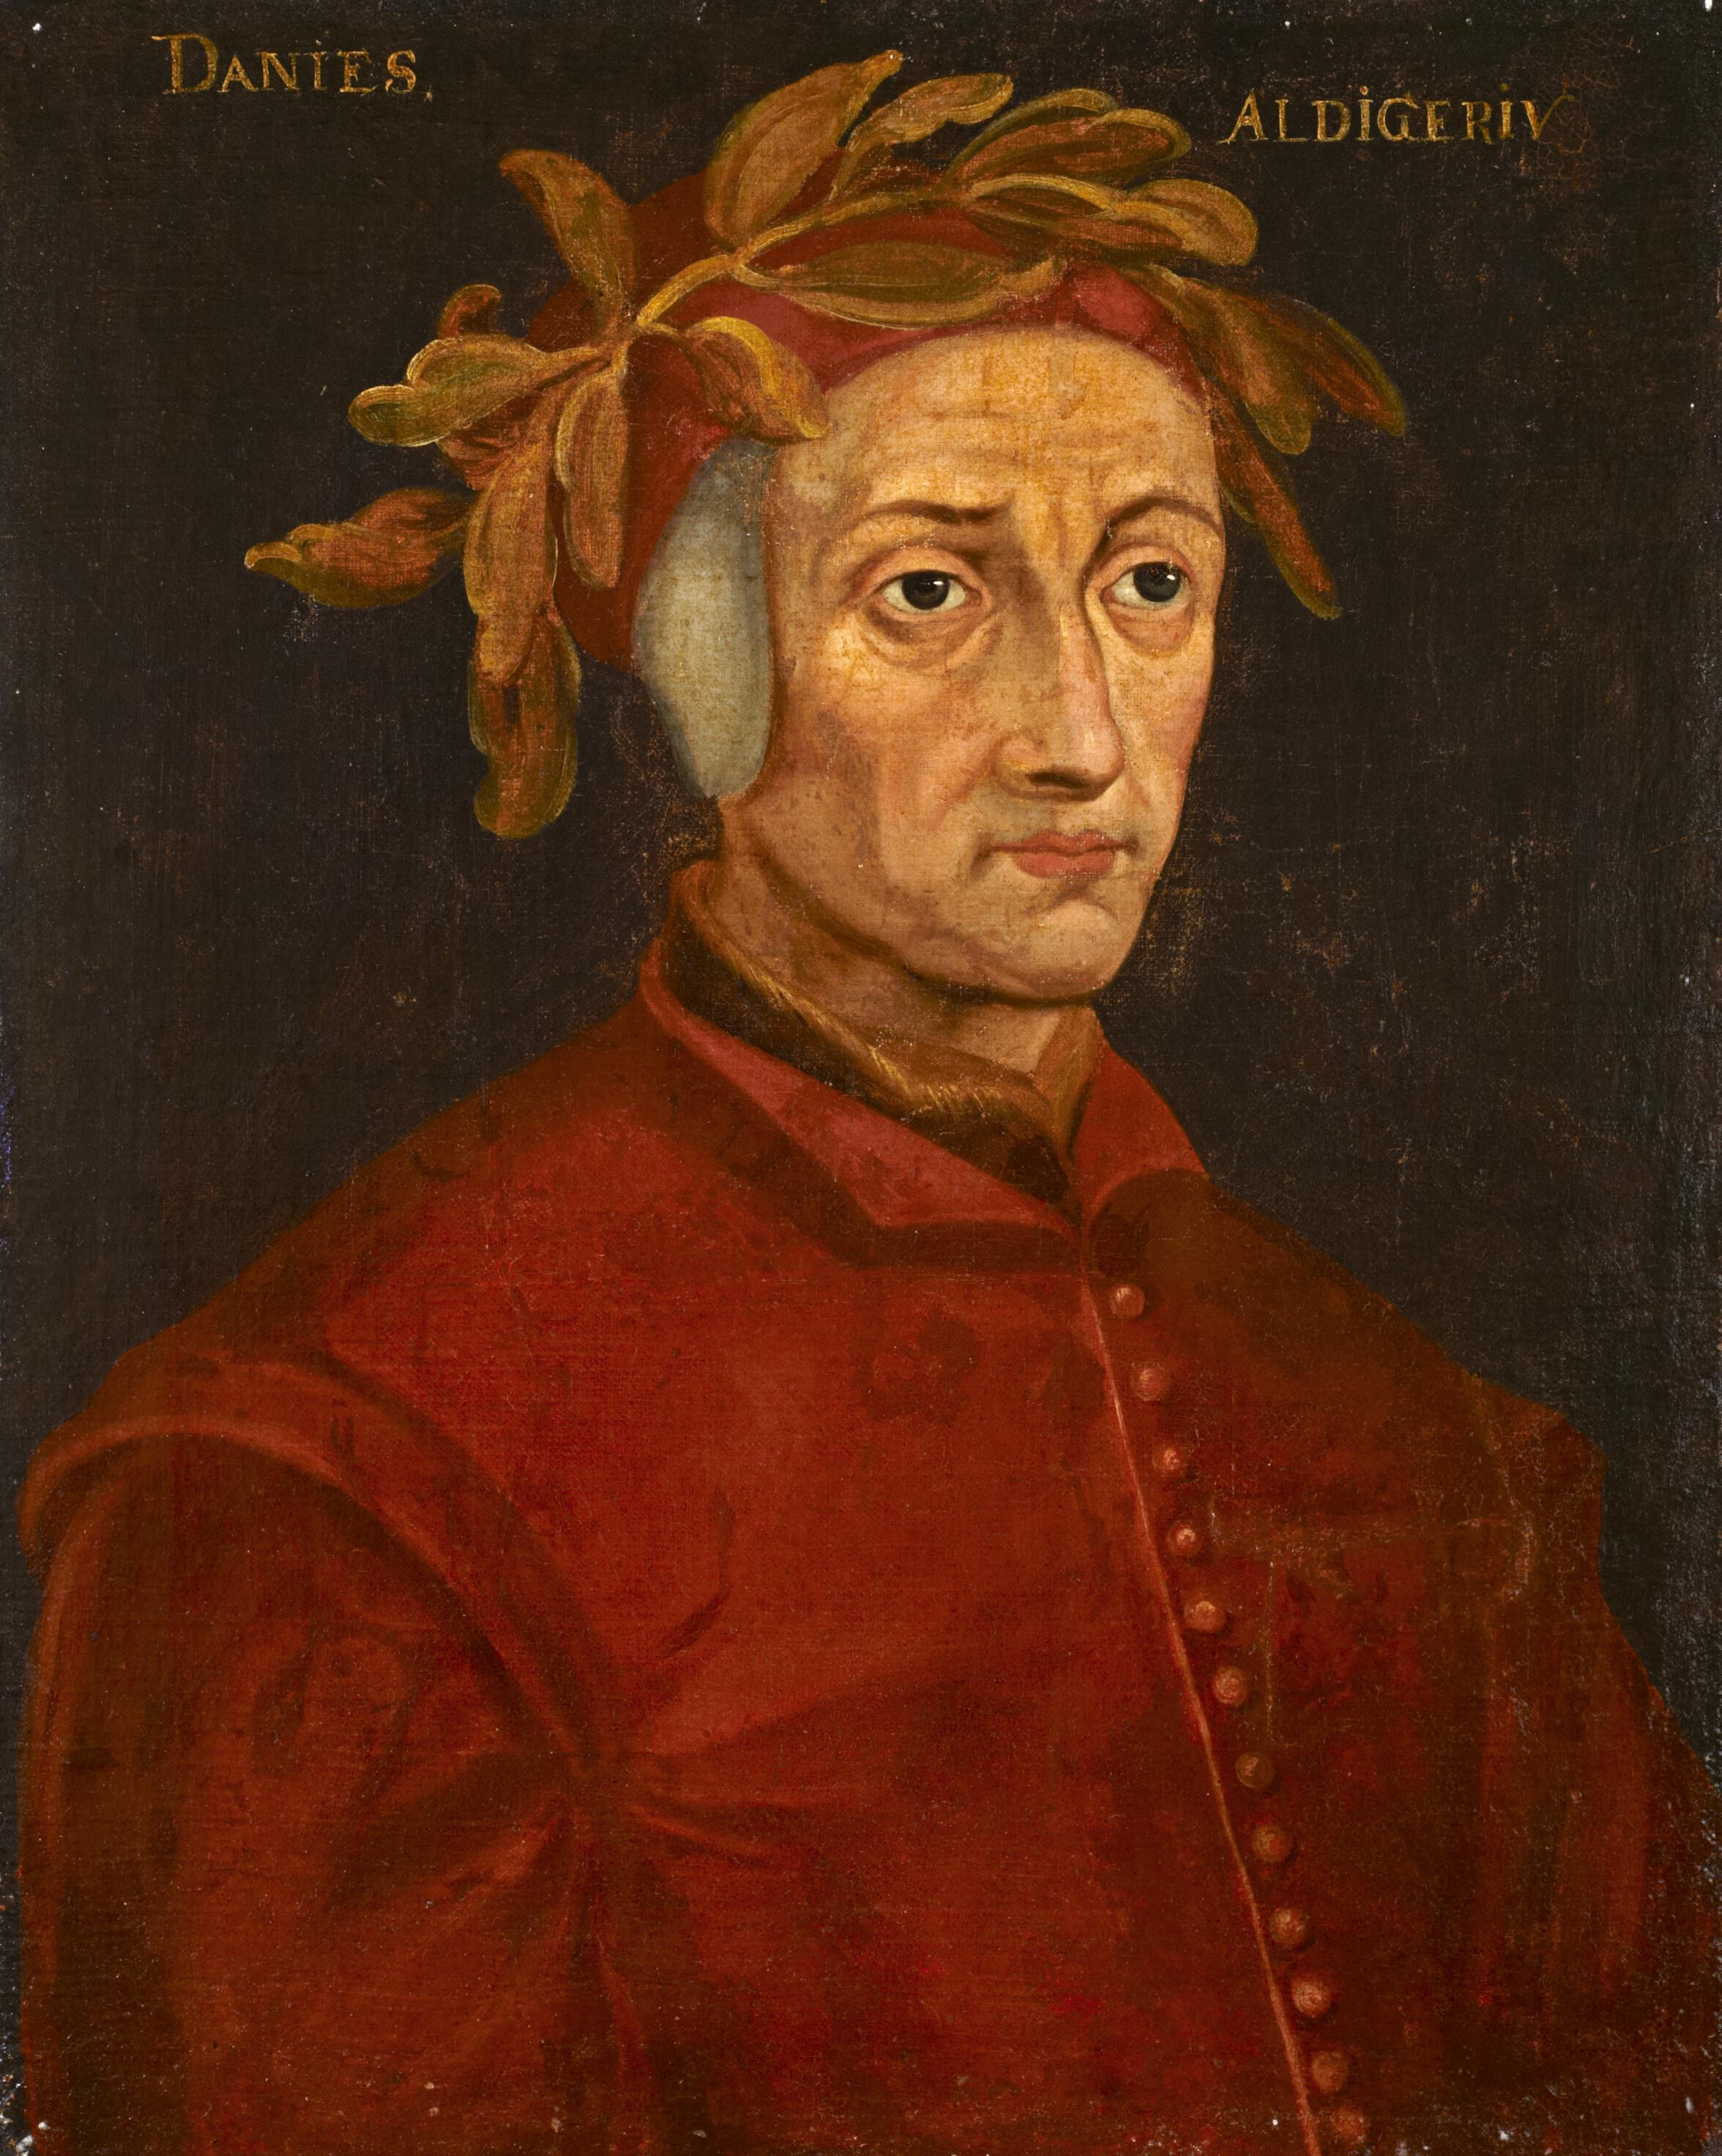 https://upload.wikimedia.org/wikipedia/commons/1/15/British_School_-_Dante_Alighieri.jpg